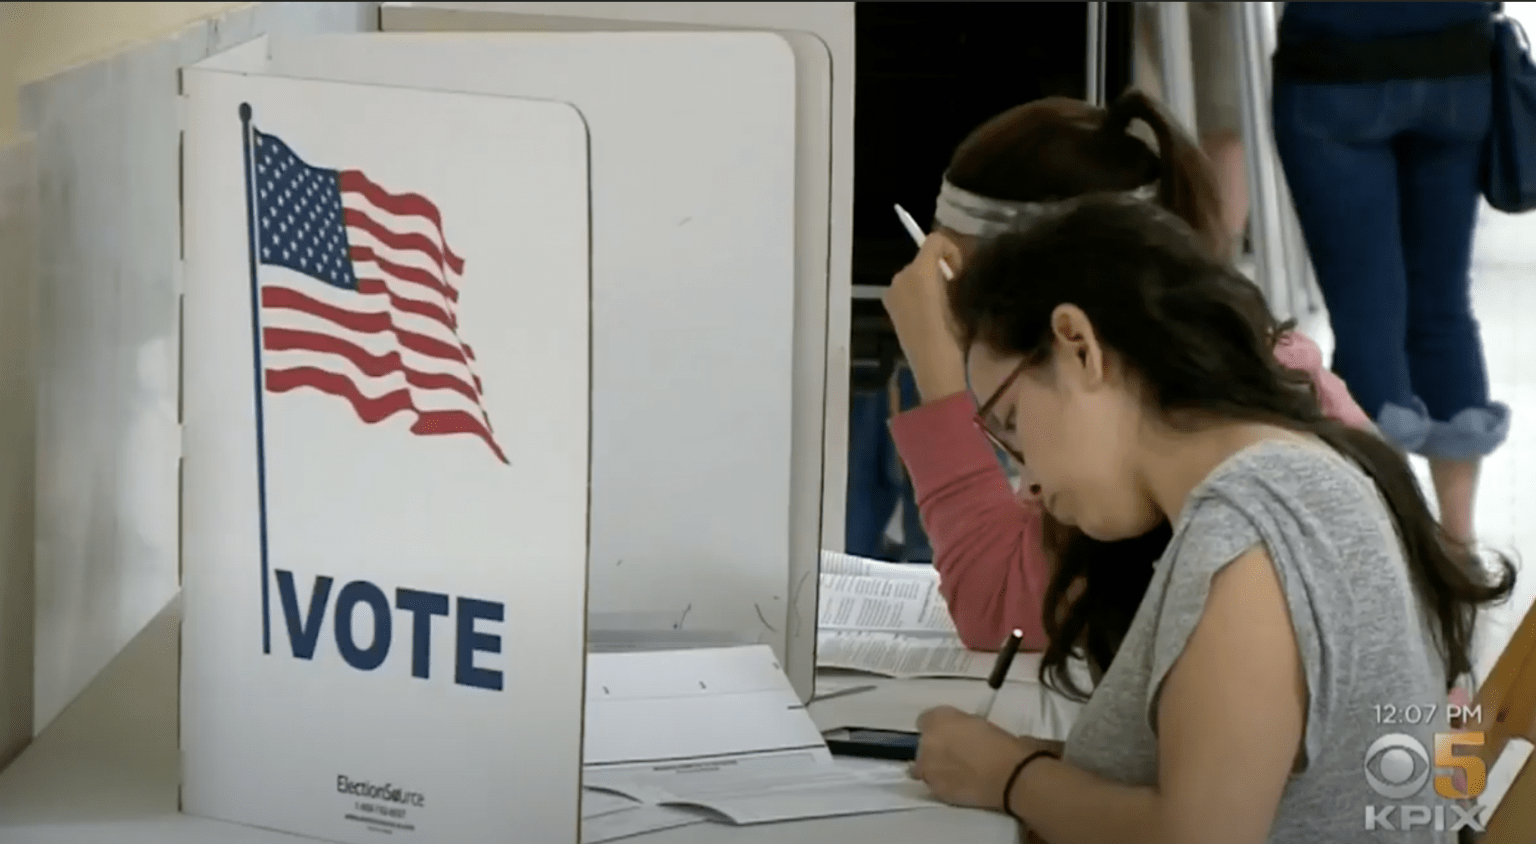 San Francisco: November 2020 ballot will include a measure to lower voting age to 16